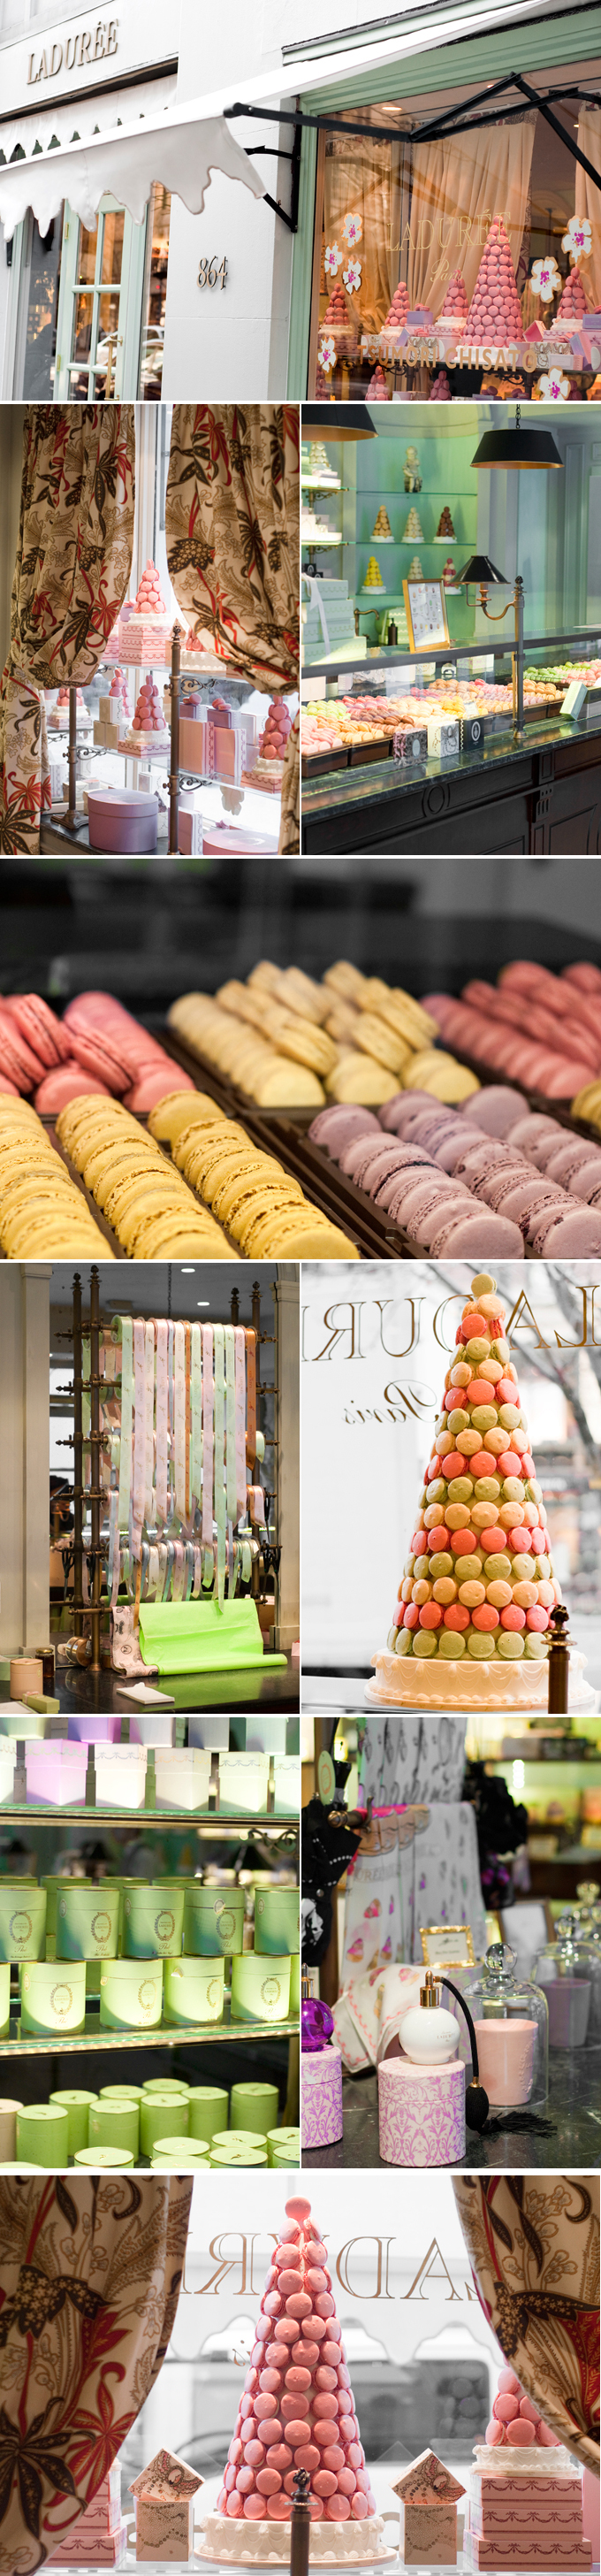 Laduree-Blog-Post_1